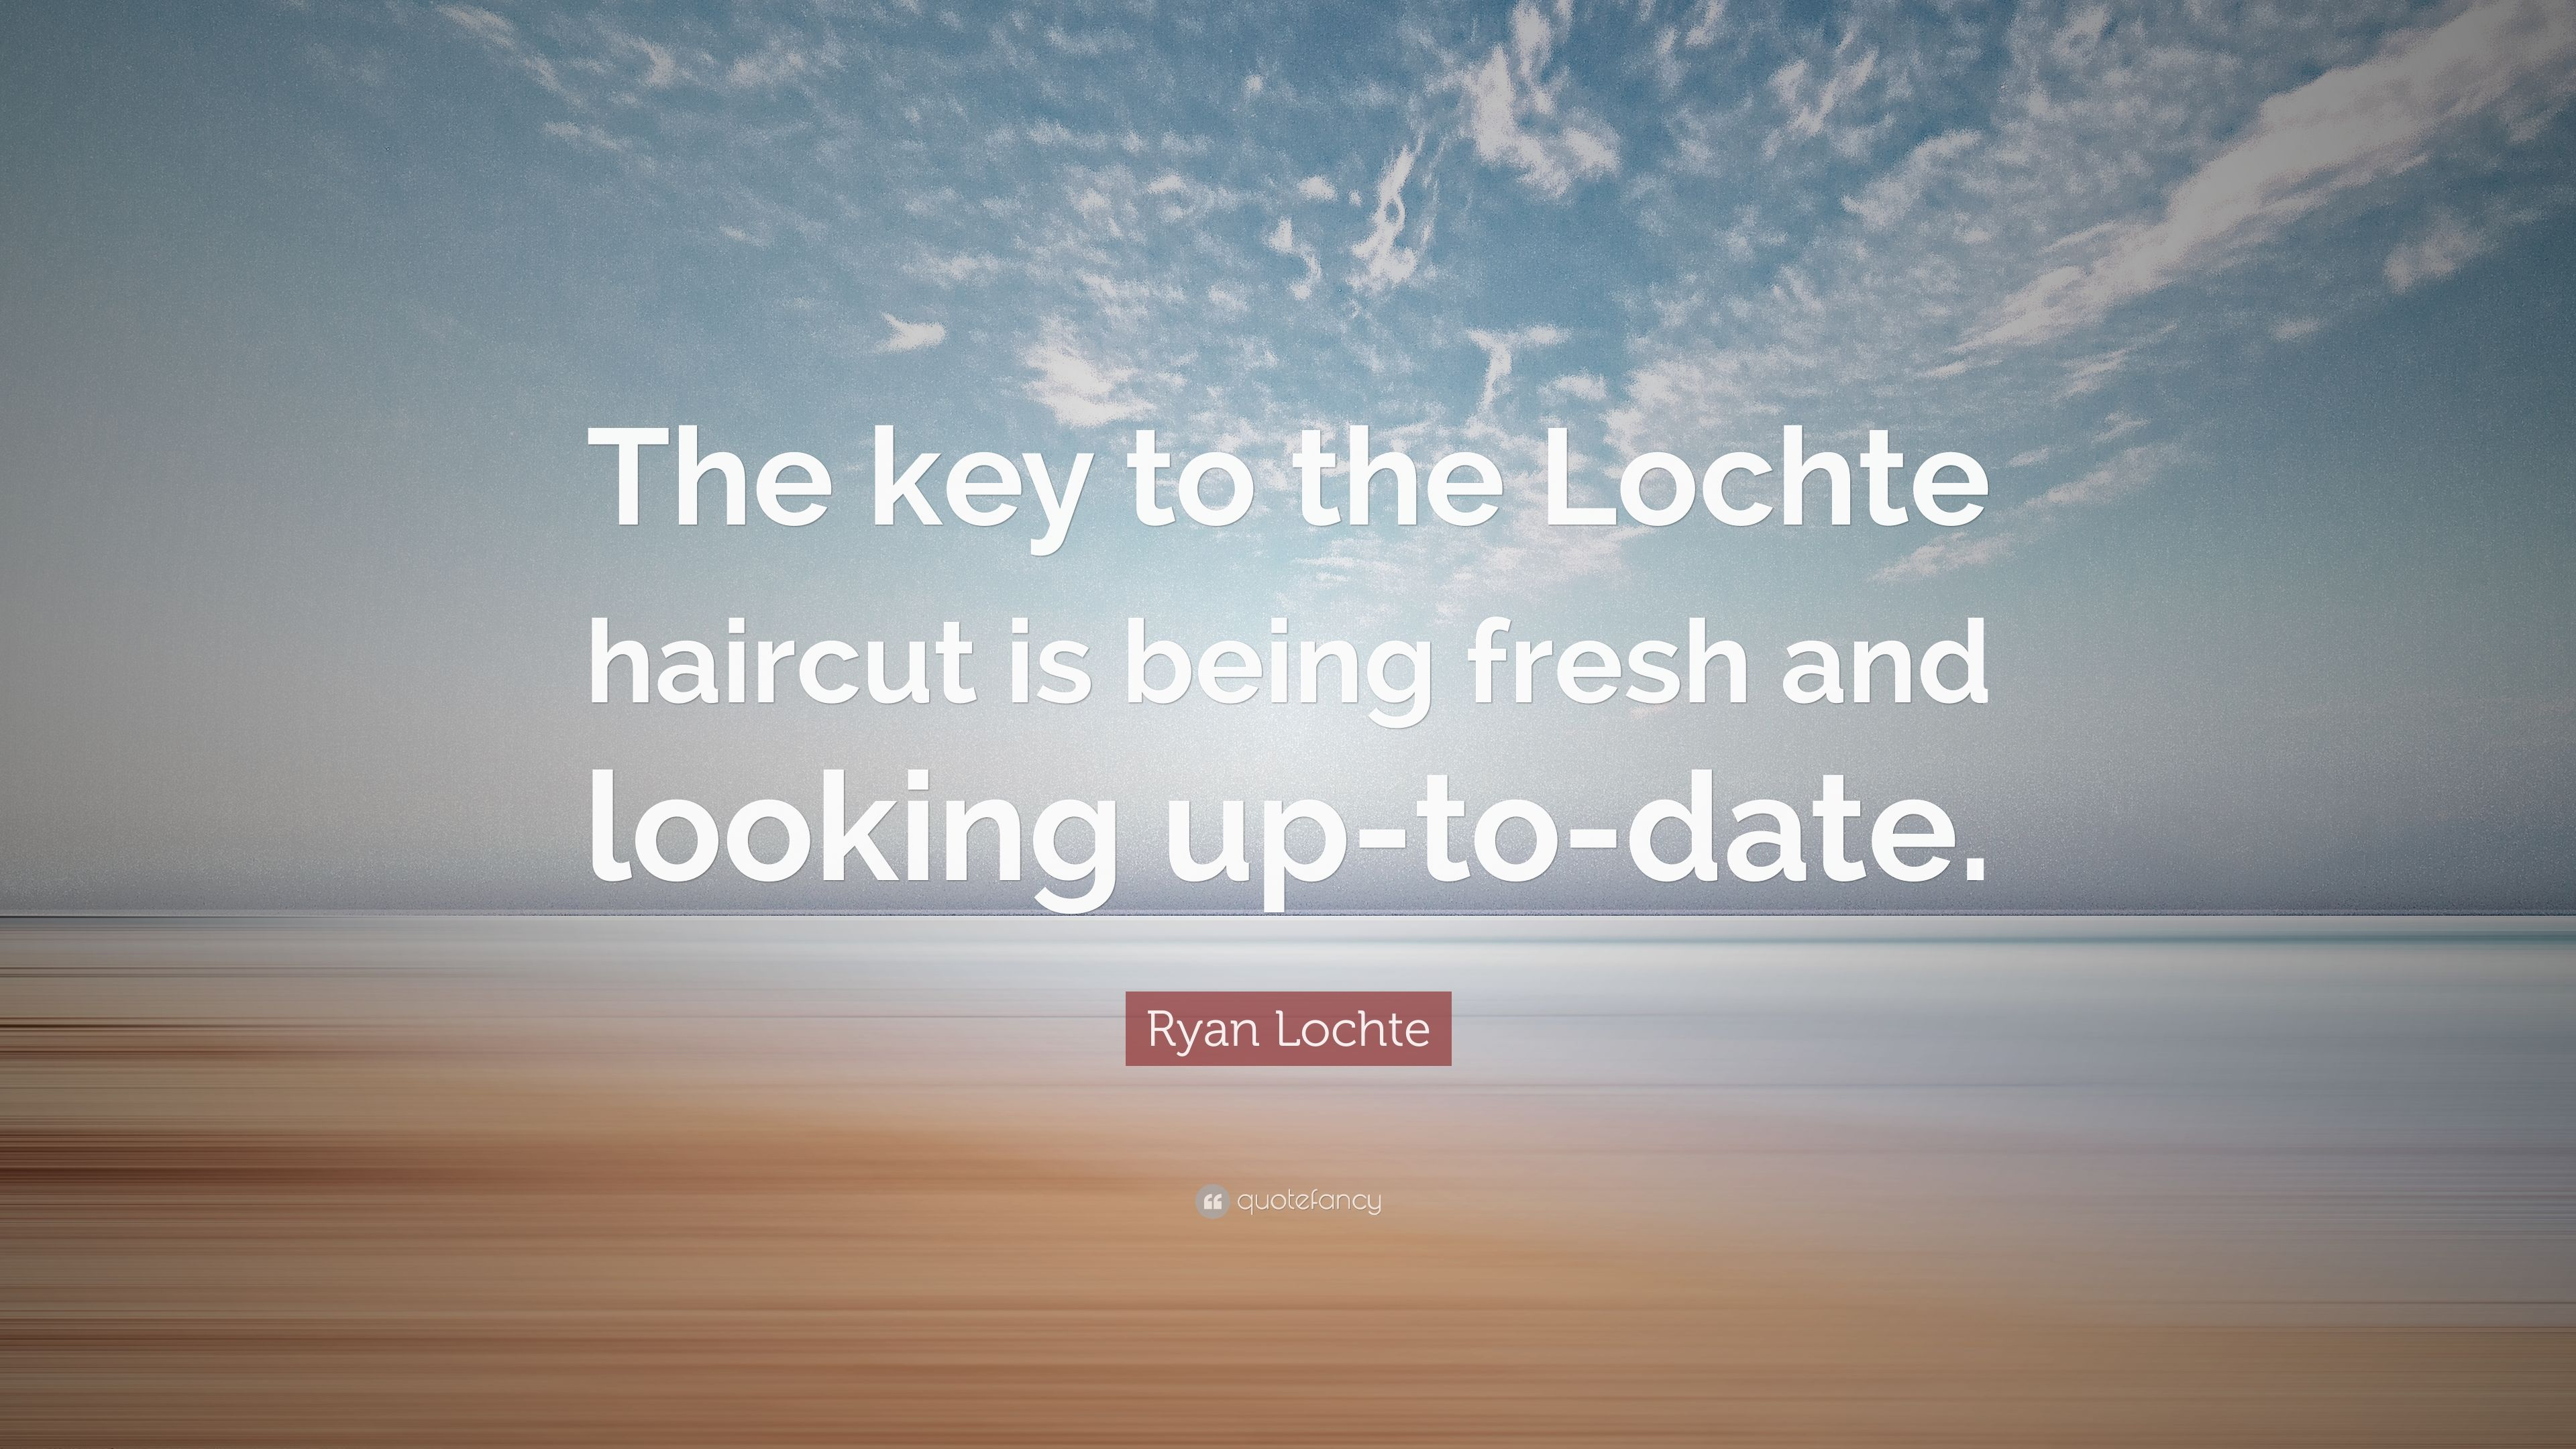 Ryan Lochte Quote The Key To The Lochte Haircut Is Being Fresh And